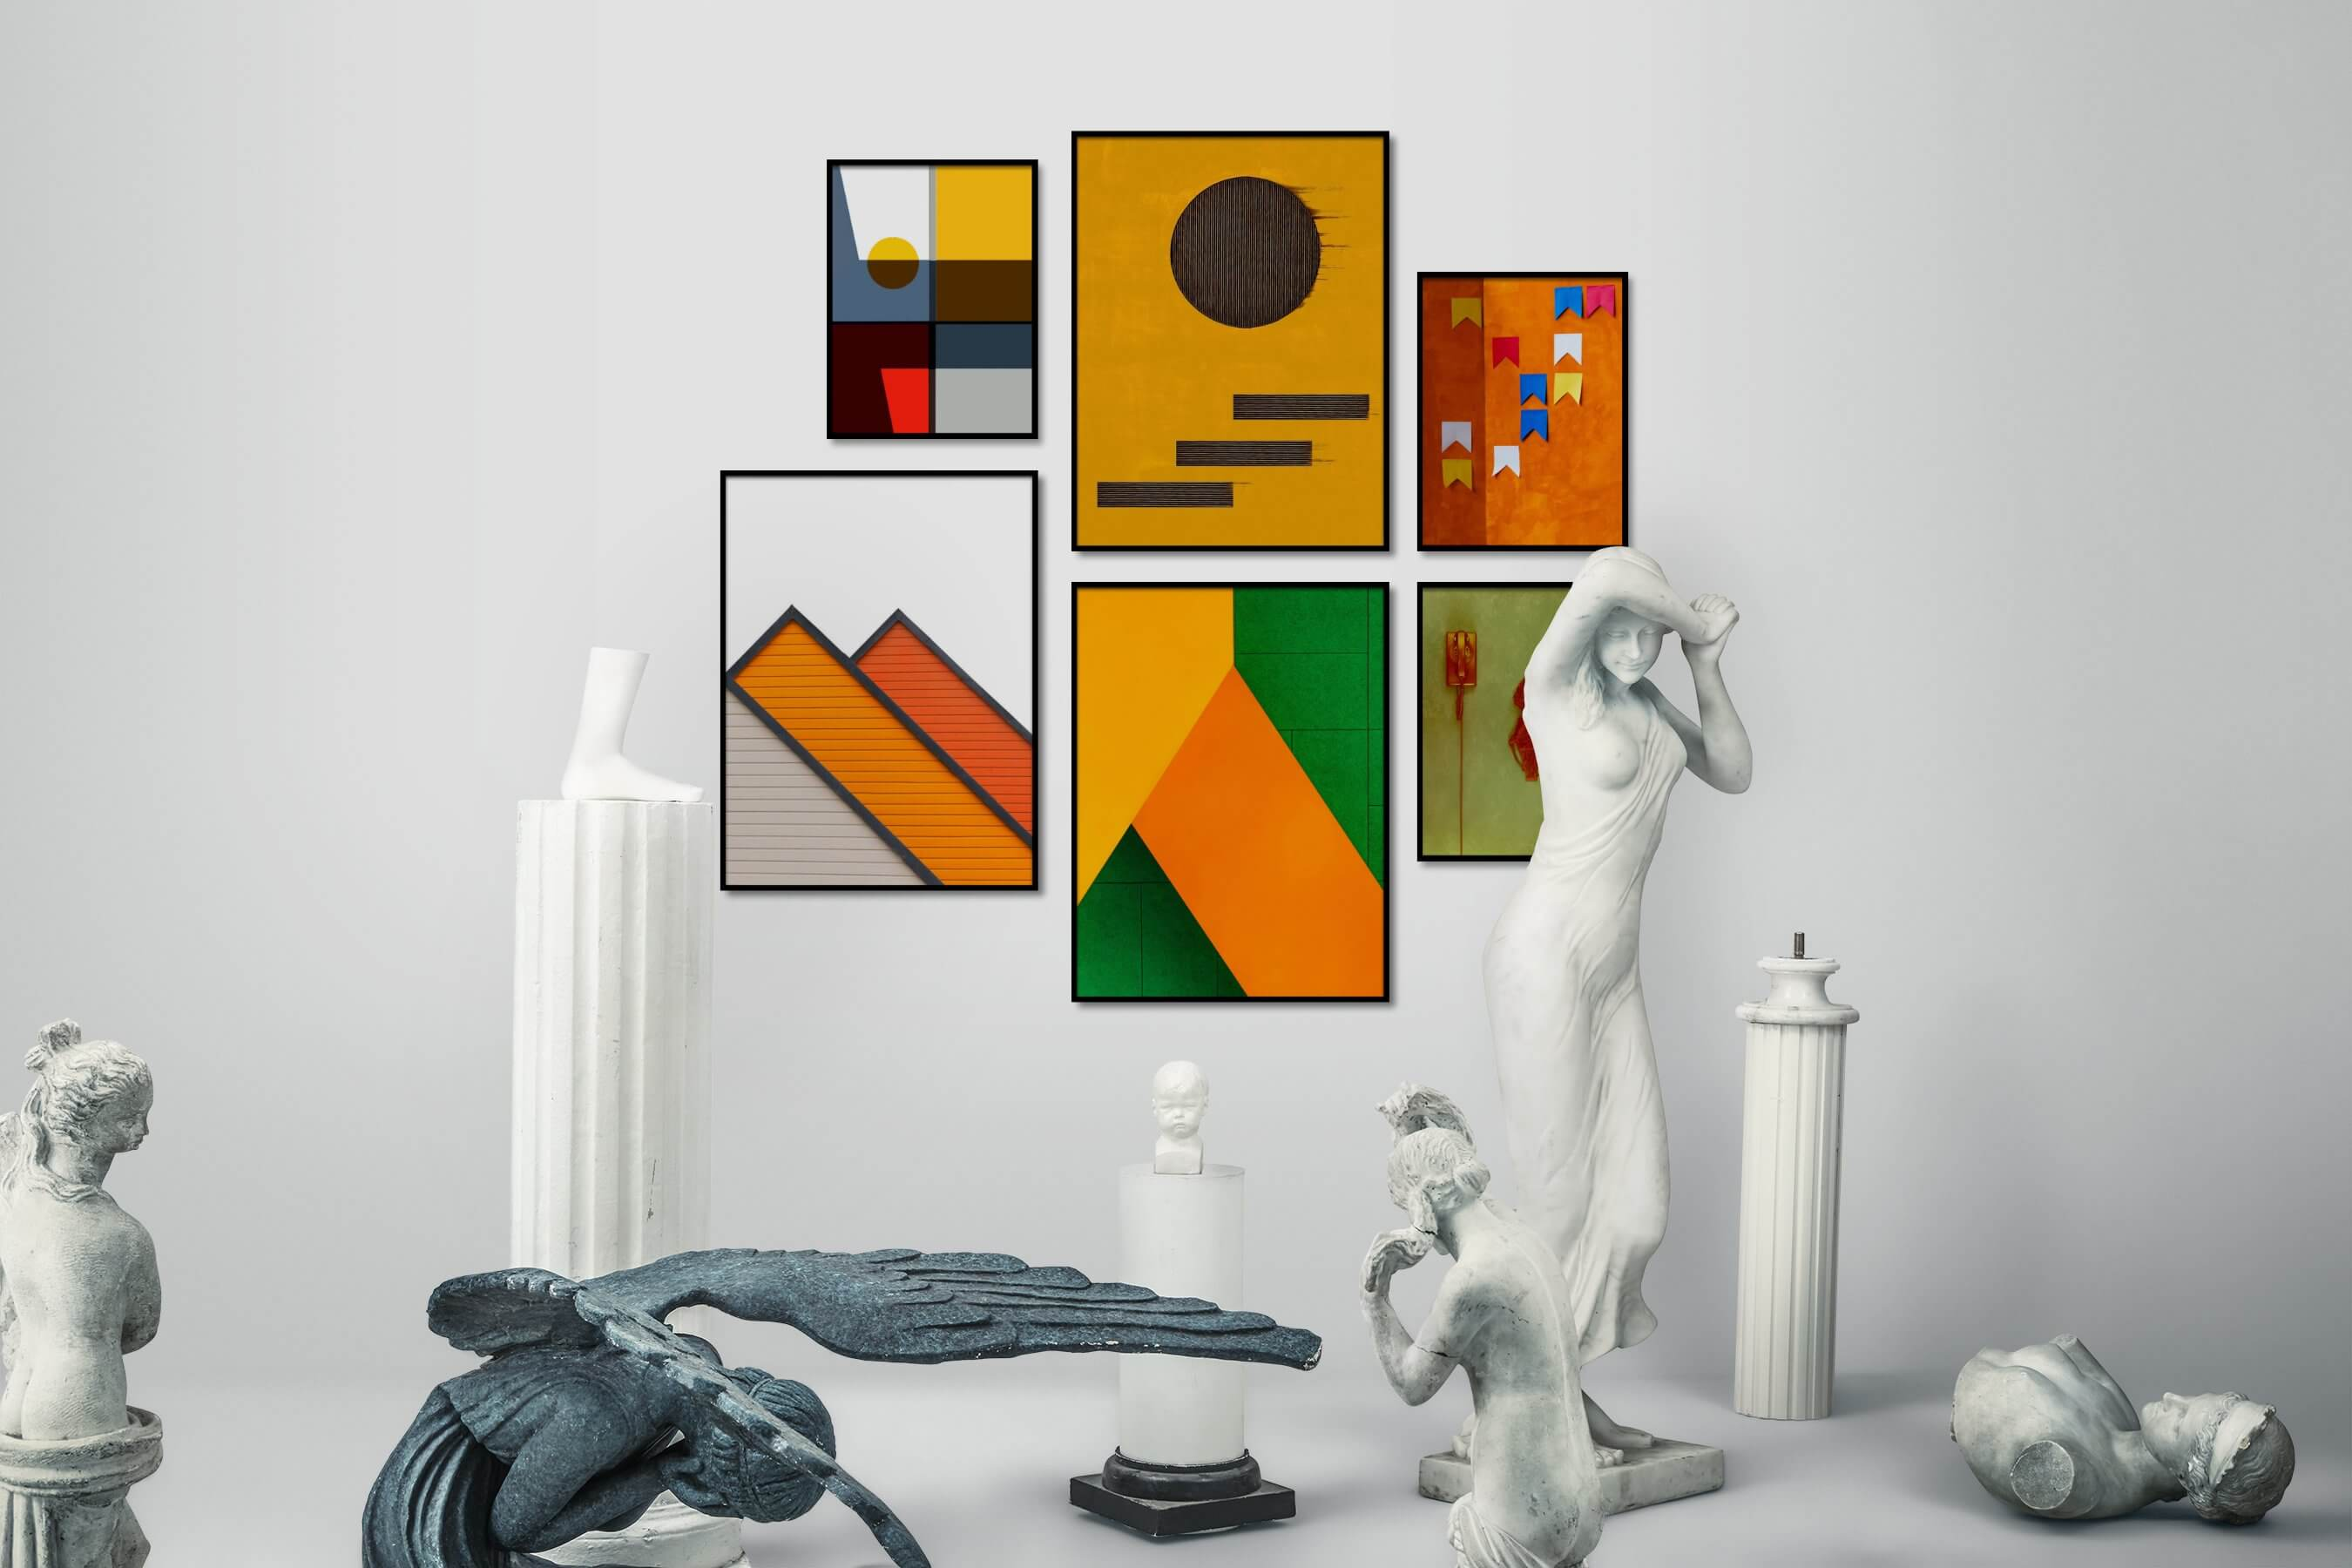 Gallery wall idea with six framed pictures arranged on a wall depicting Colorful, For the Maximalist, For the Minimalist, Bright Tones, For the Moderate, Artsy, and Vintage